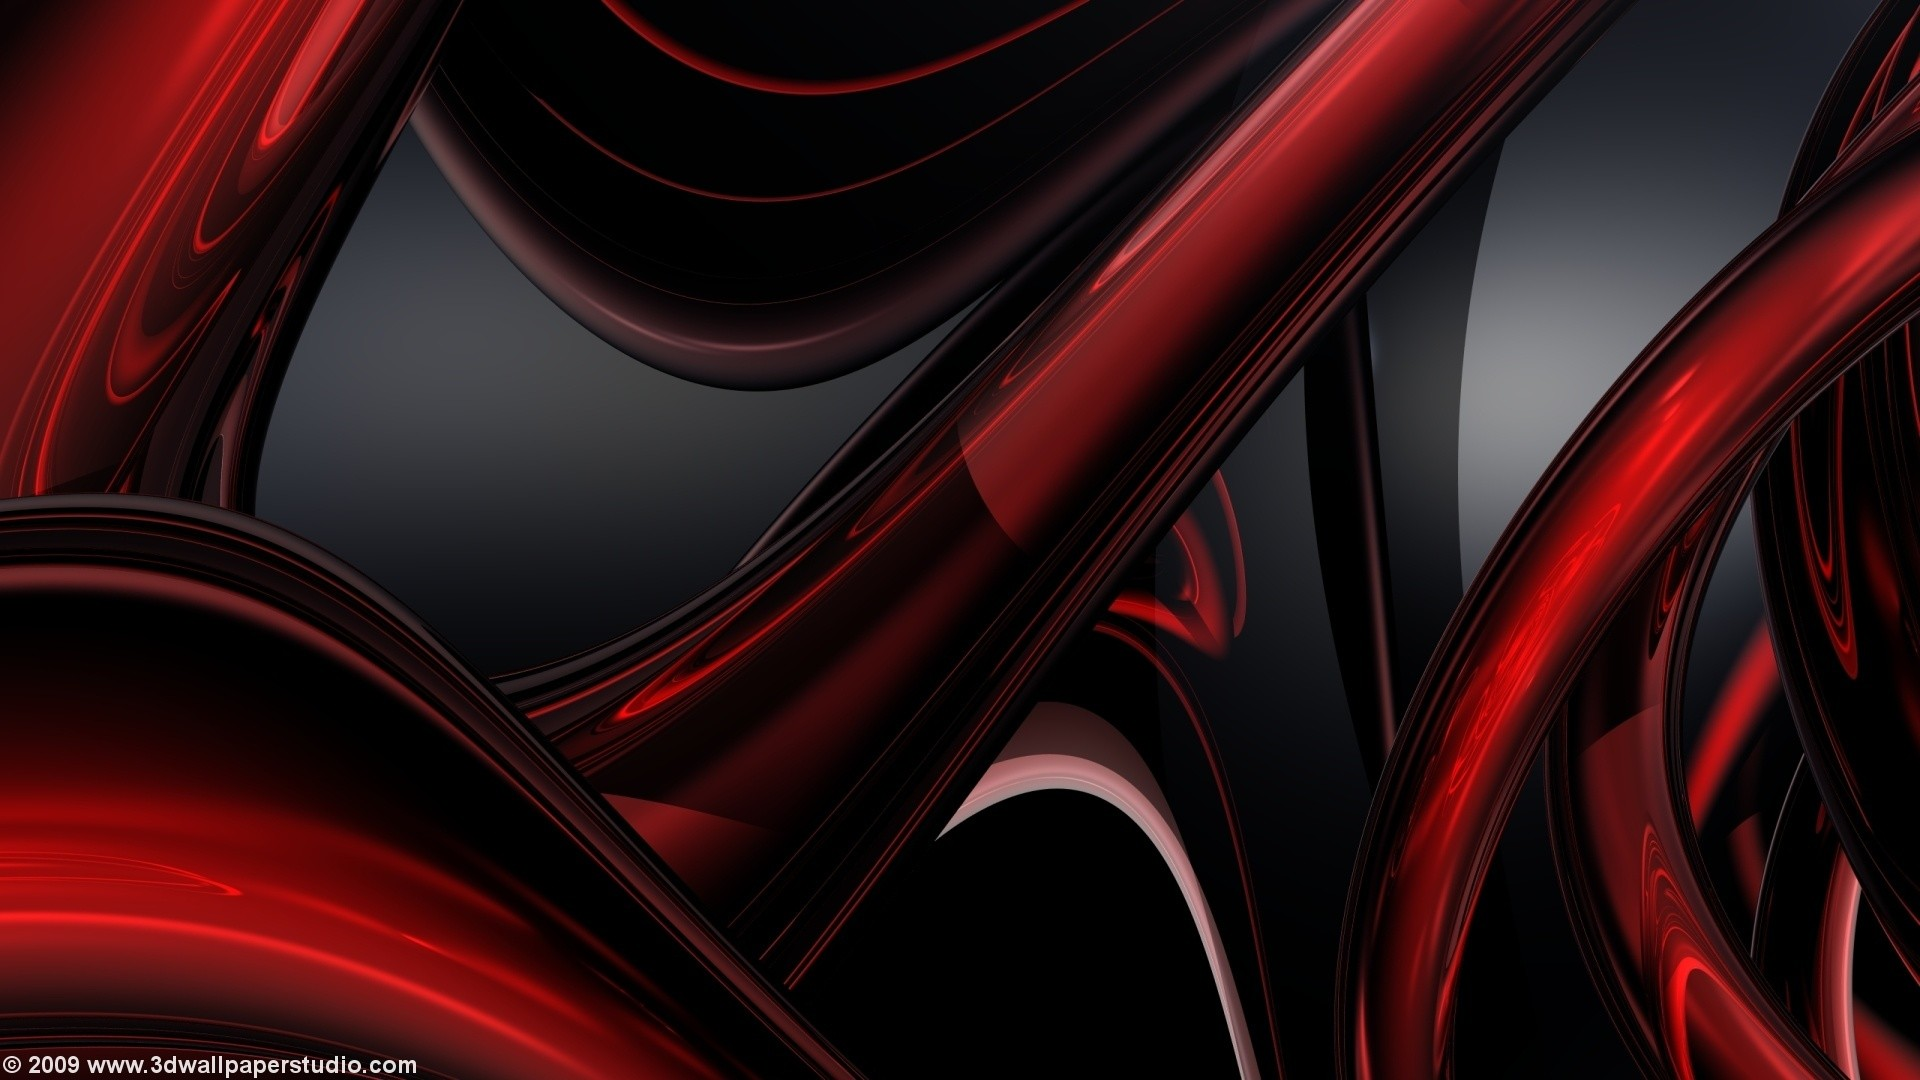 Red Abstract Desktop Backgrounds